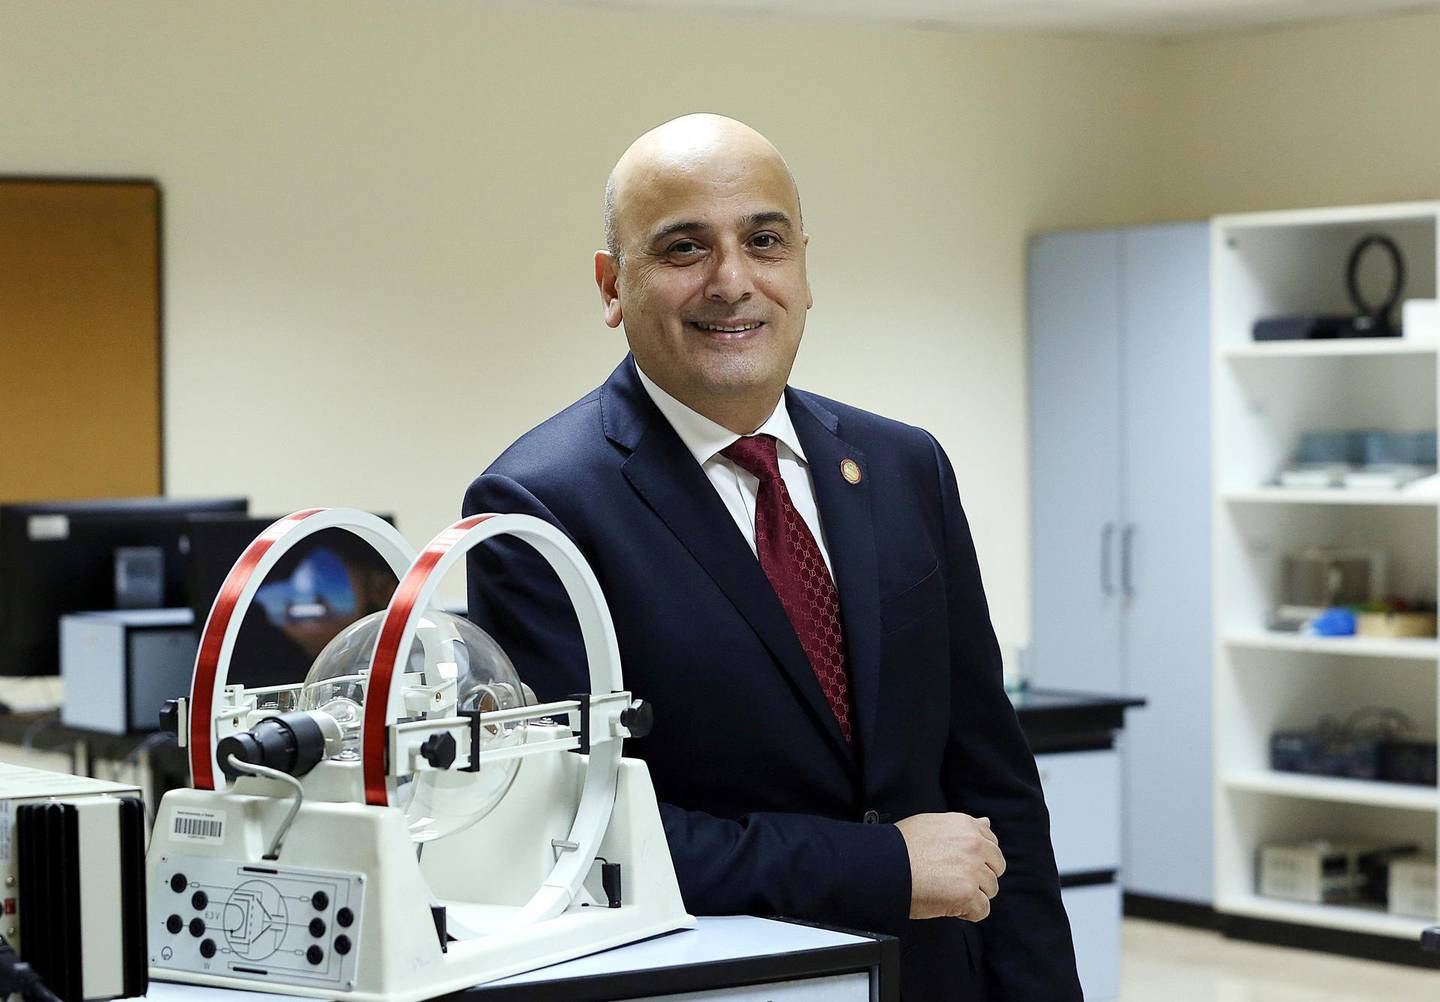 Sharjah, May 27, 2018: Dr. Mahmoud Anabtawi, Dean of the College of Arts and Sciences, American University of Sharjah at the University City in Sharjah . Satish Kumar for the National / Story by John Dennehy